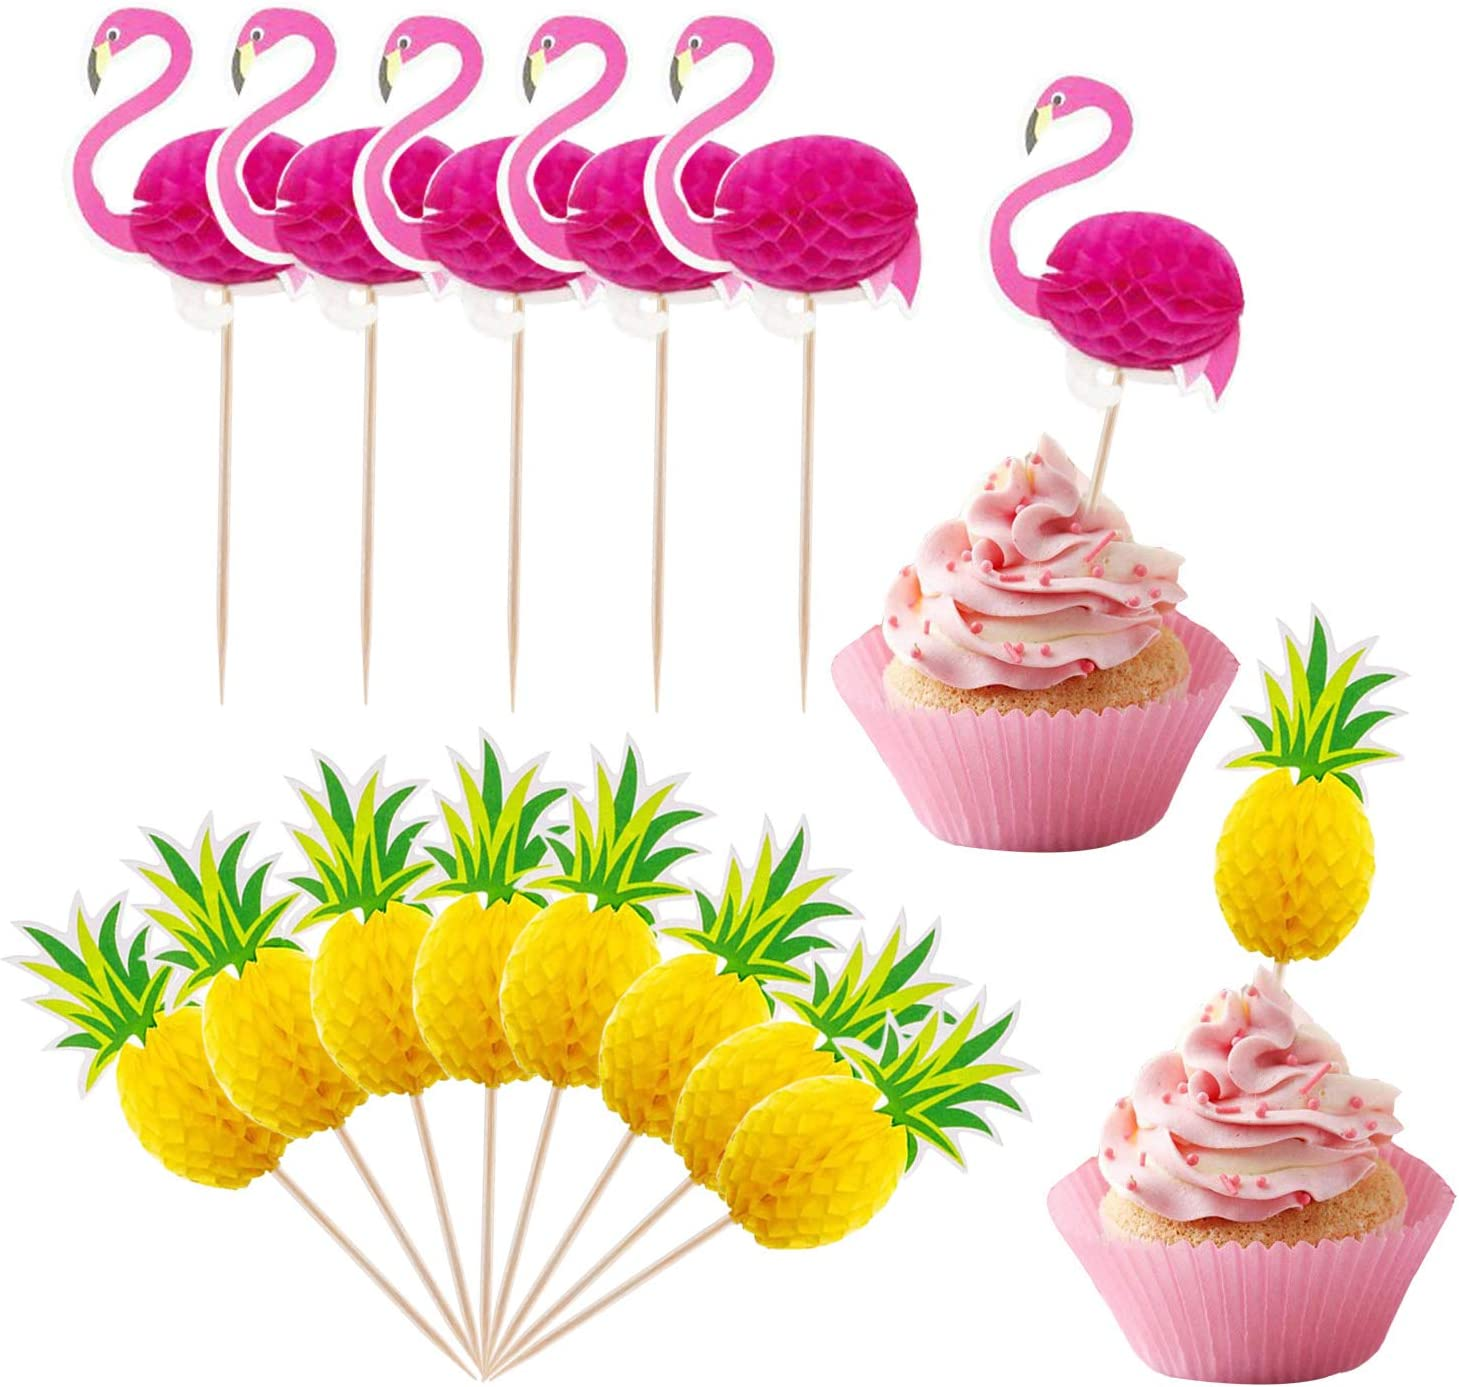 Amazon Com Lauren 48 Pcs Cupcake Toppers 3d Flamingo And Pineapple Cupcakes Toppers Food Picks Party Cocktail For Party Tropical Cupcake Picks Decoration Toys Games